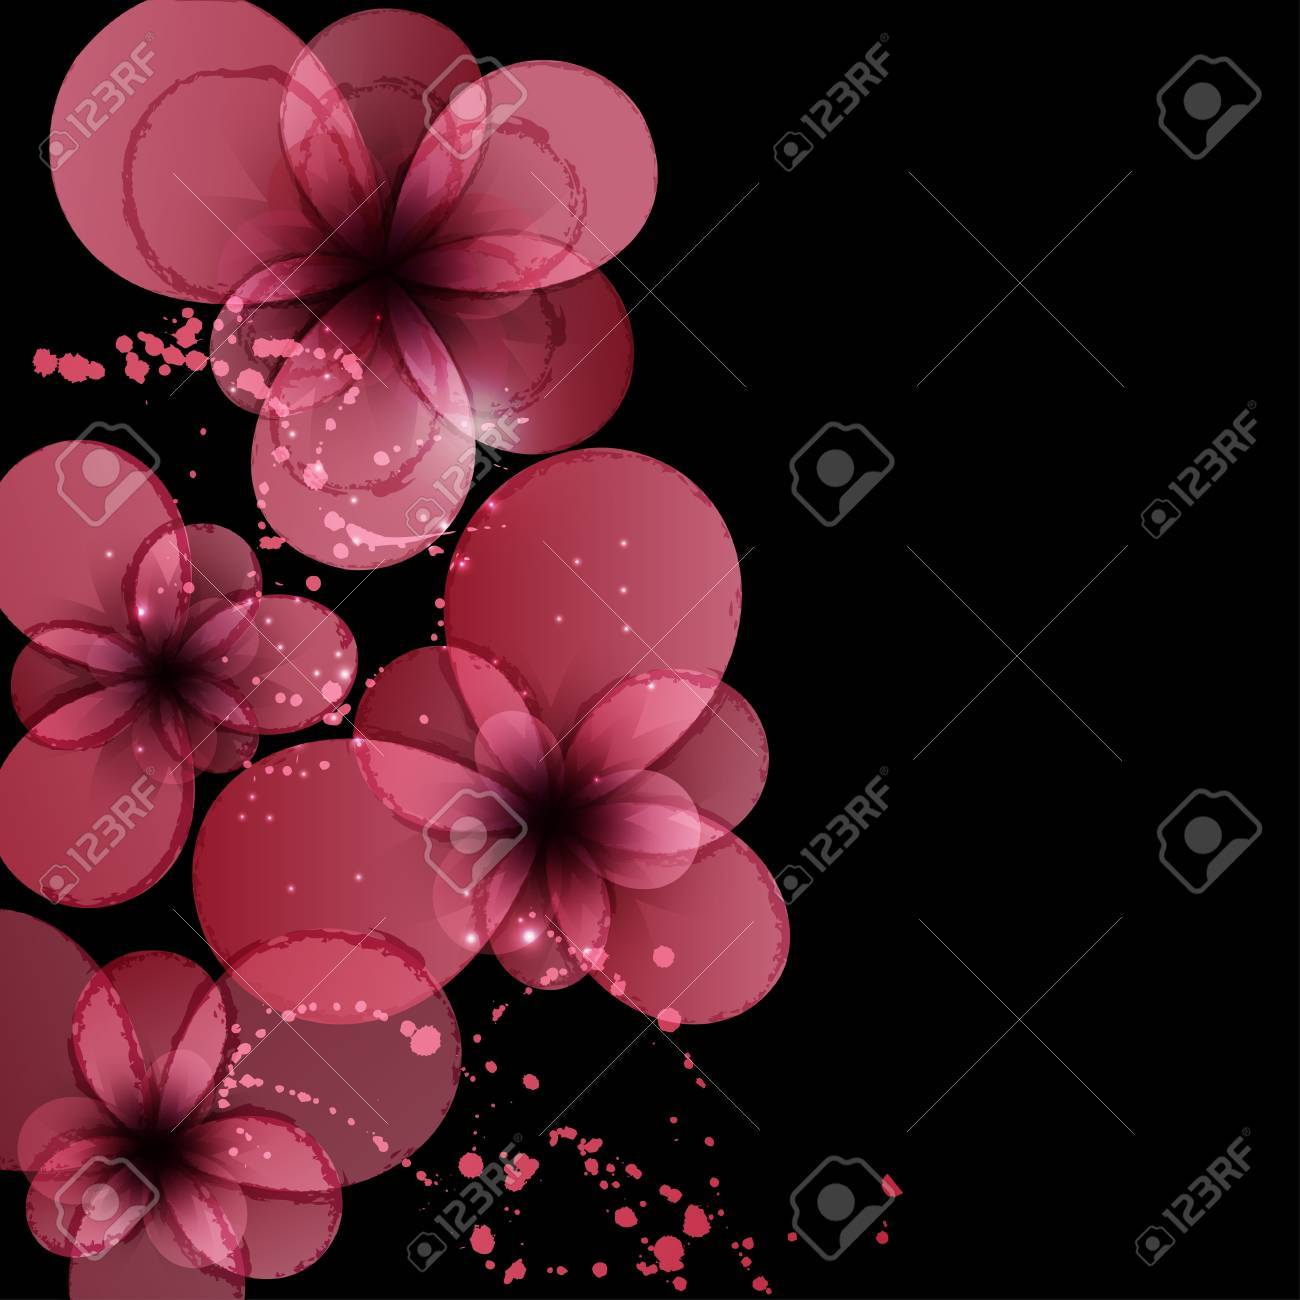 Background With Flower Invitation Card For Wedding Royalty Free ...